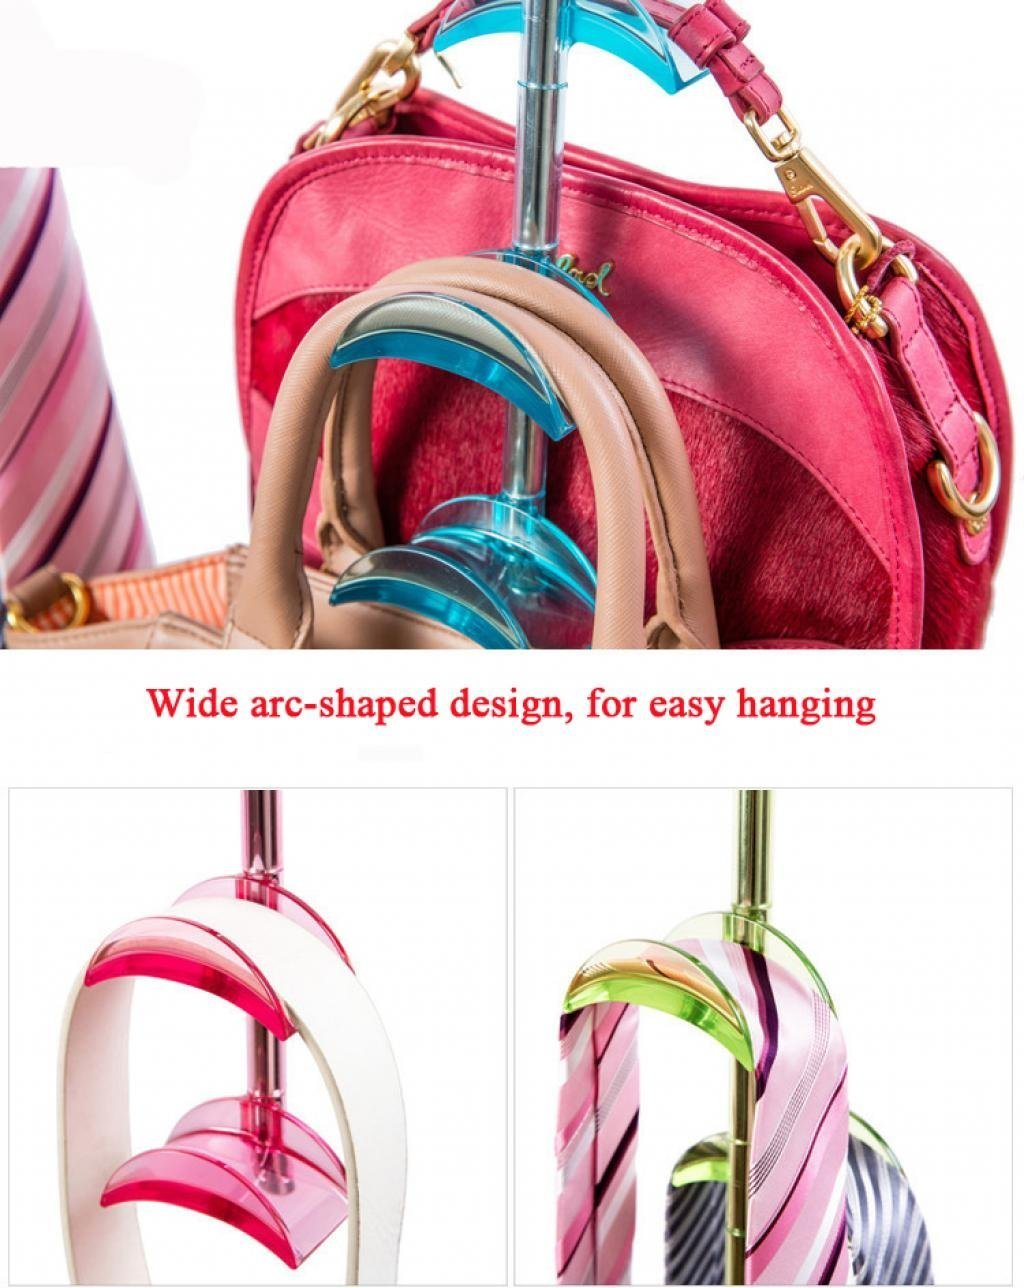 Select nice louise maelys 2 packs 360 degree rotating hanger rack 4 hooks closet organizer for handbags scarves ties belts